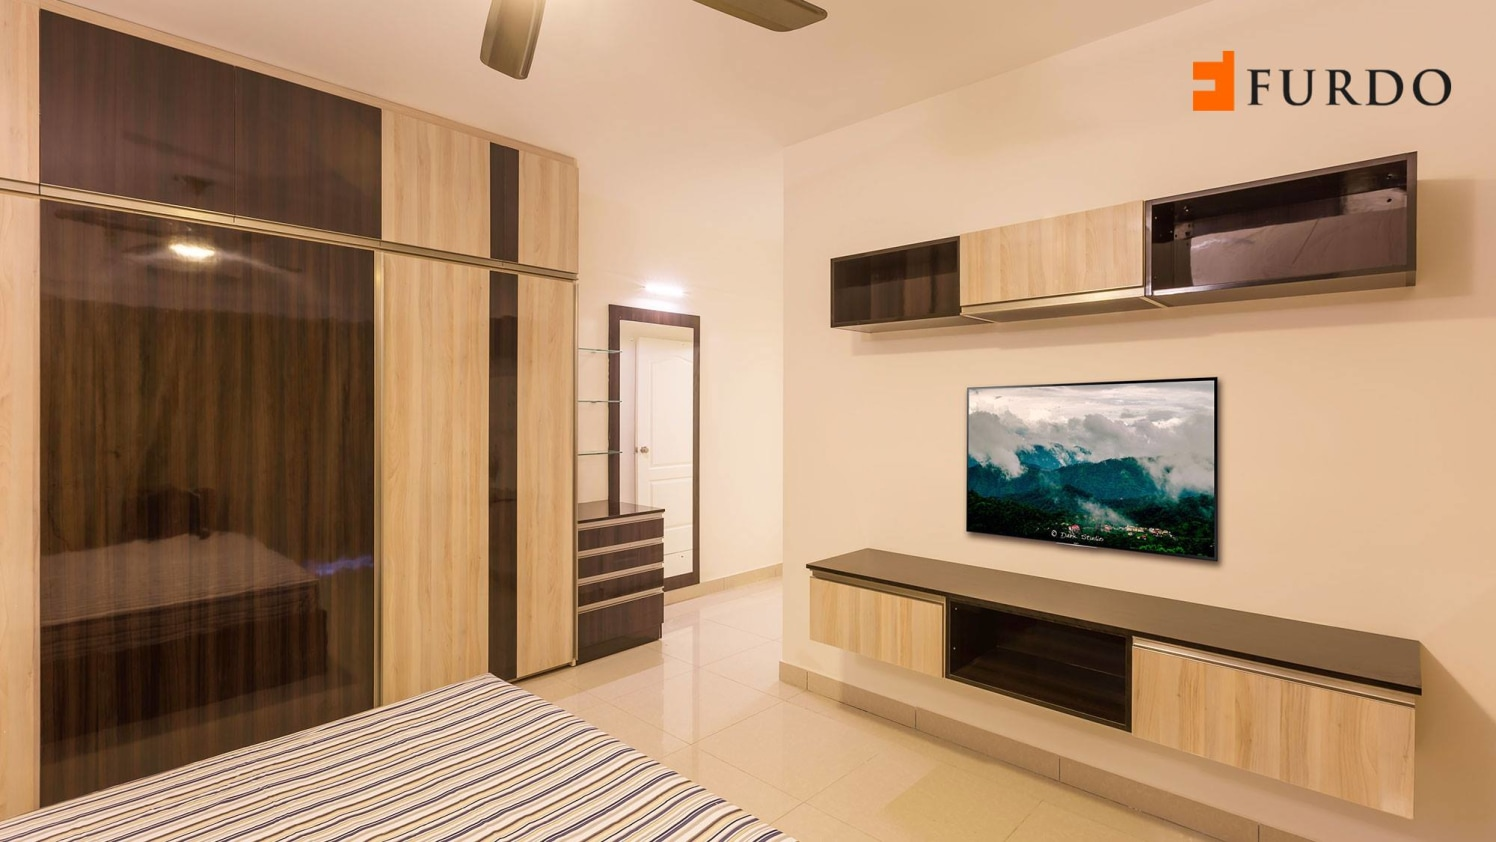 Bedroom With Wooden Work and marble flooring by Furdo.com Bedroom Modern | Interior Design Photos & Ideas